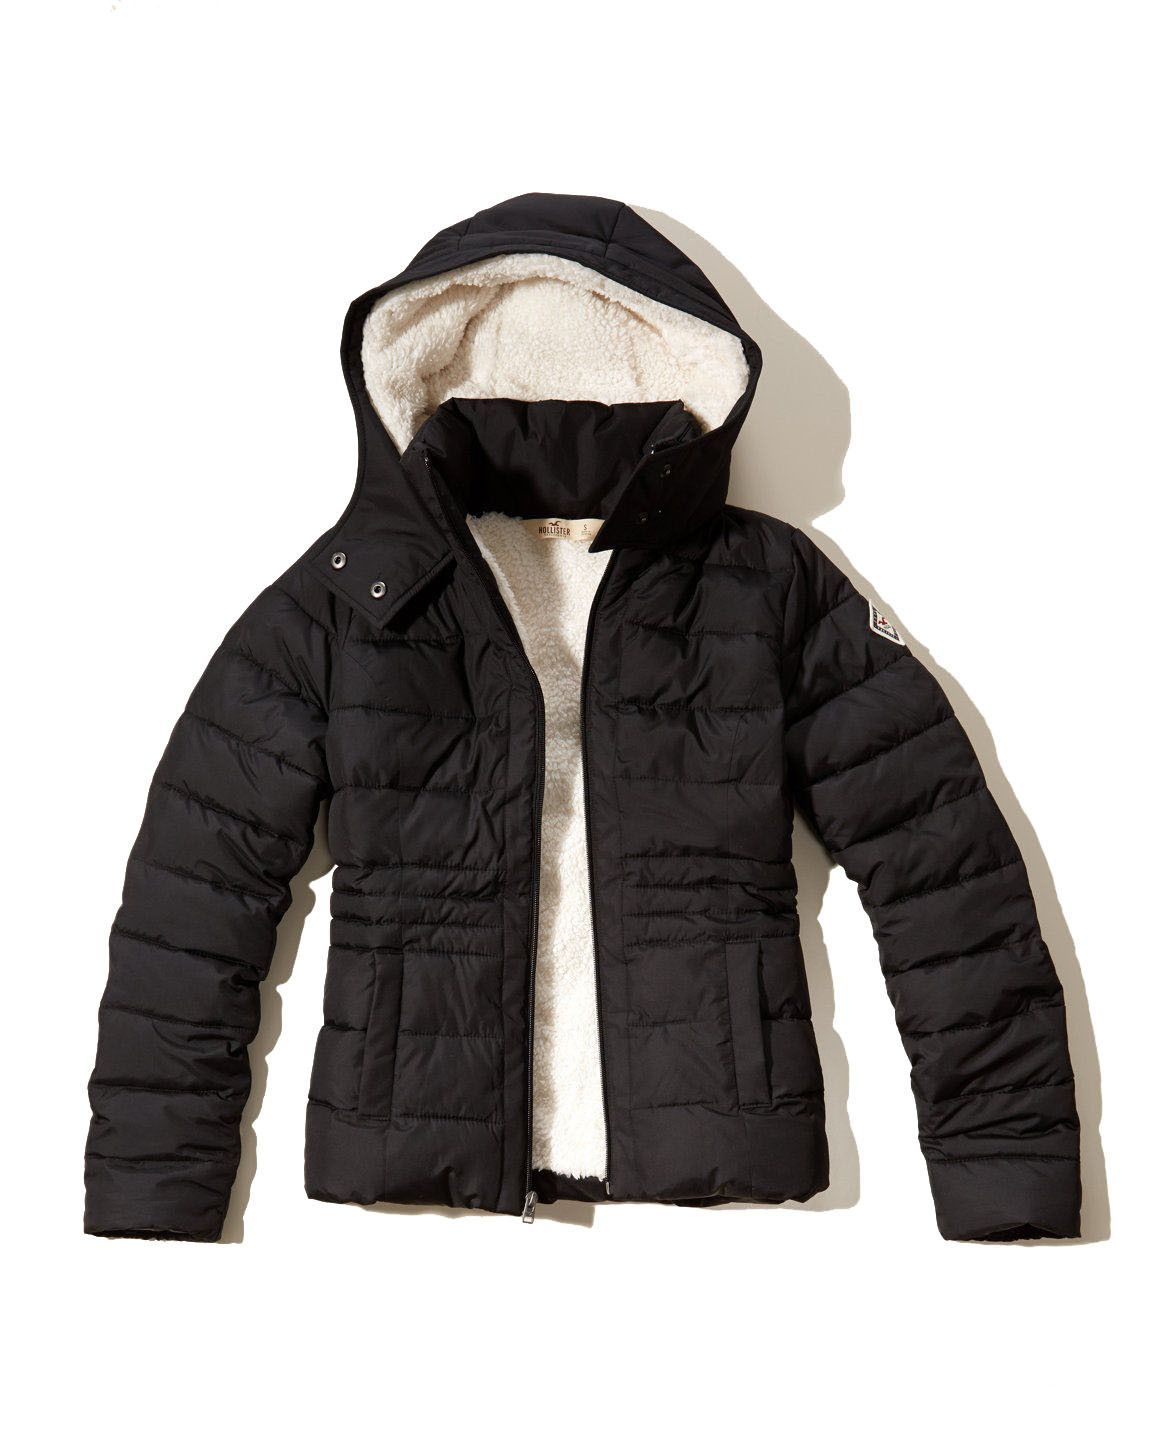 Explore Hollister Jackets, Puffy Jacket, and more! Hollister Womens Sherpa  Lined Puffer Jacket Black